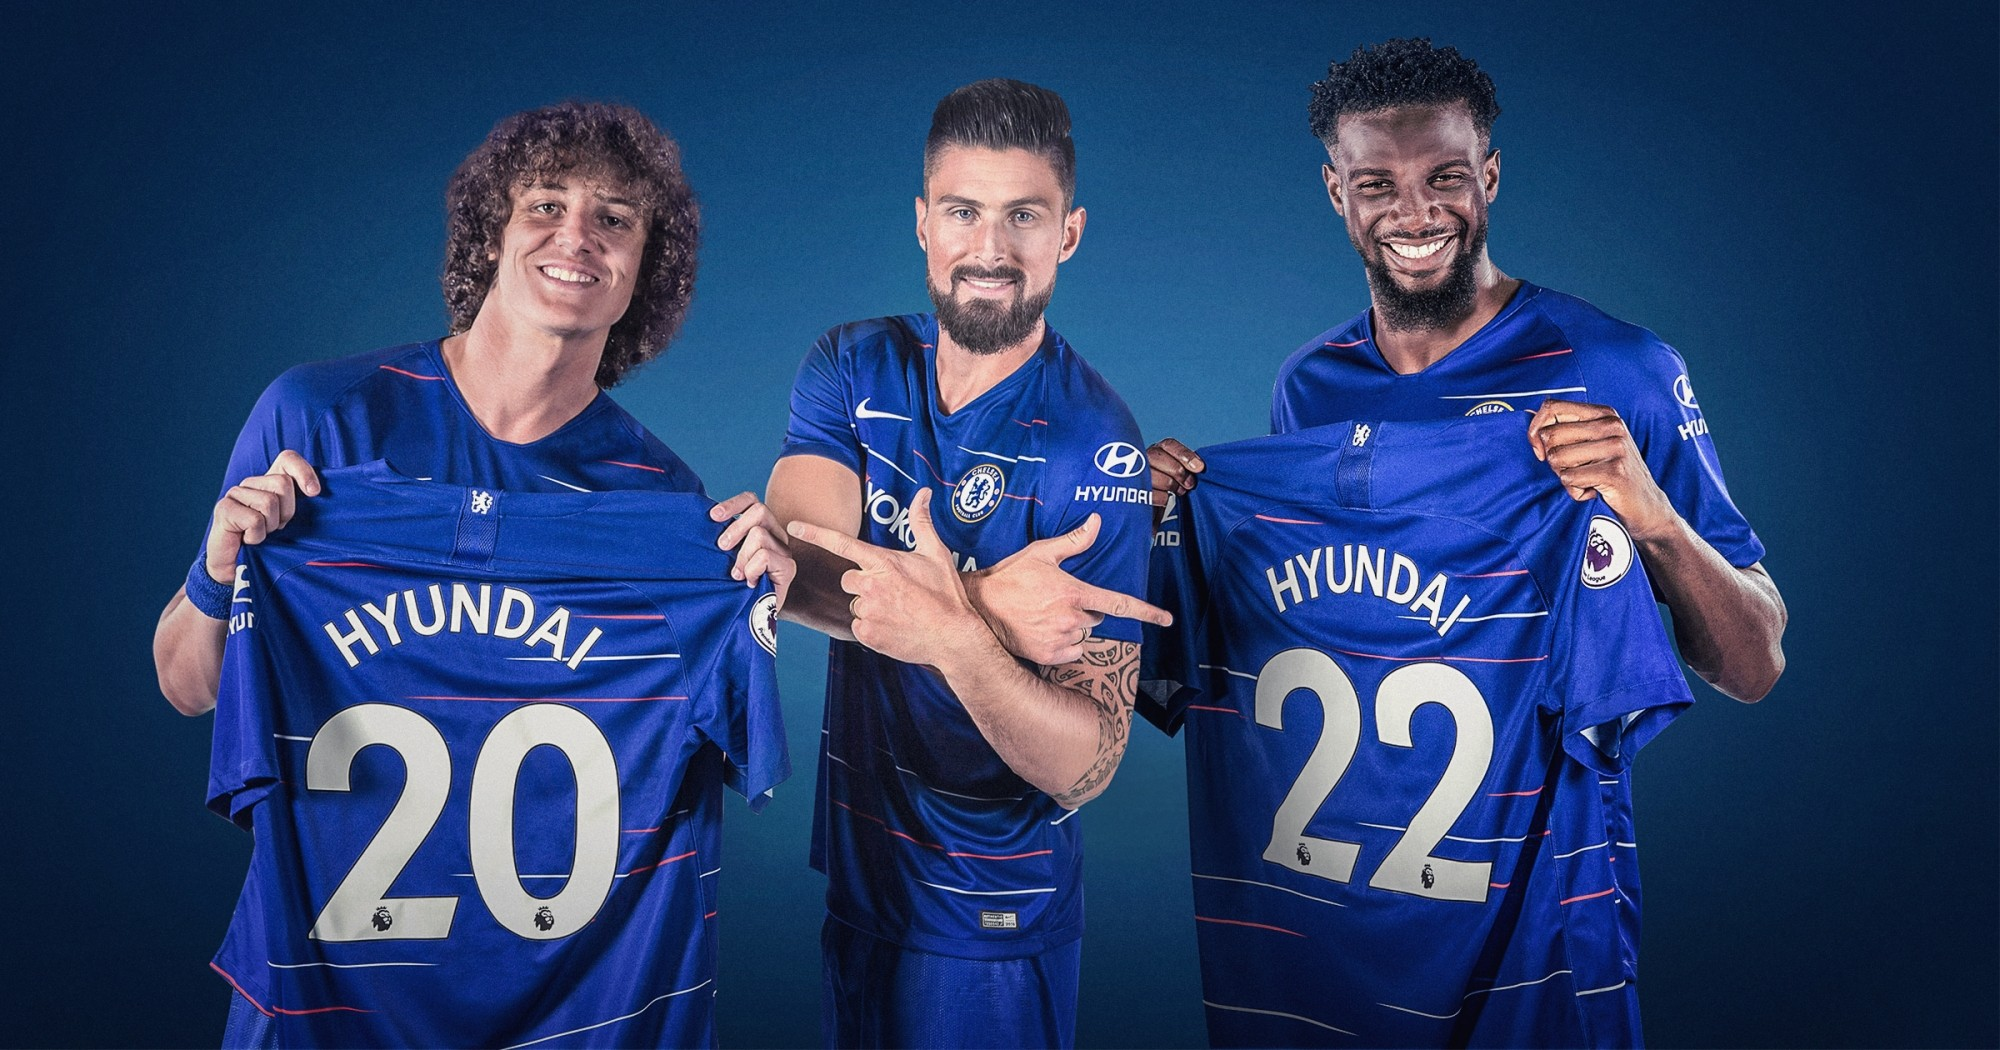 Global Automotive Partner of Chelsea Football Club with New Multi-year Deal